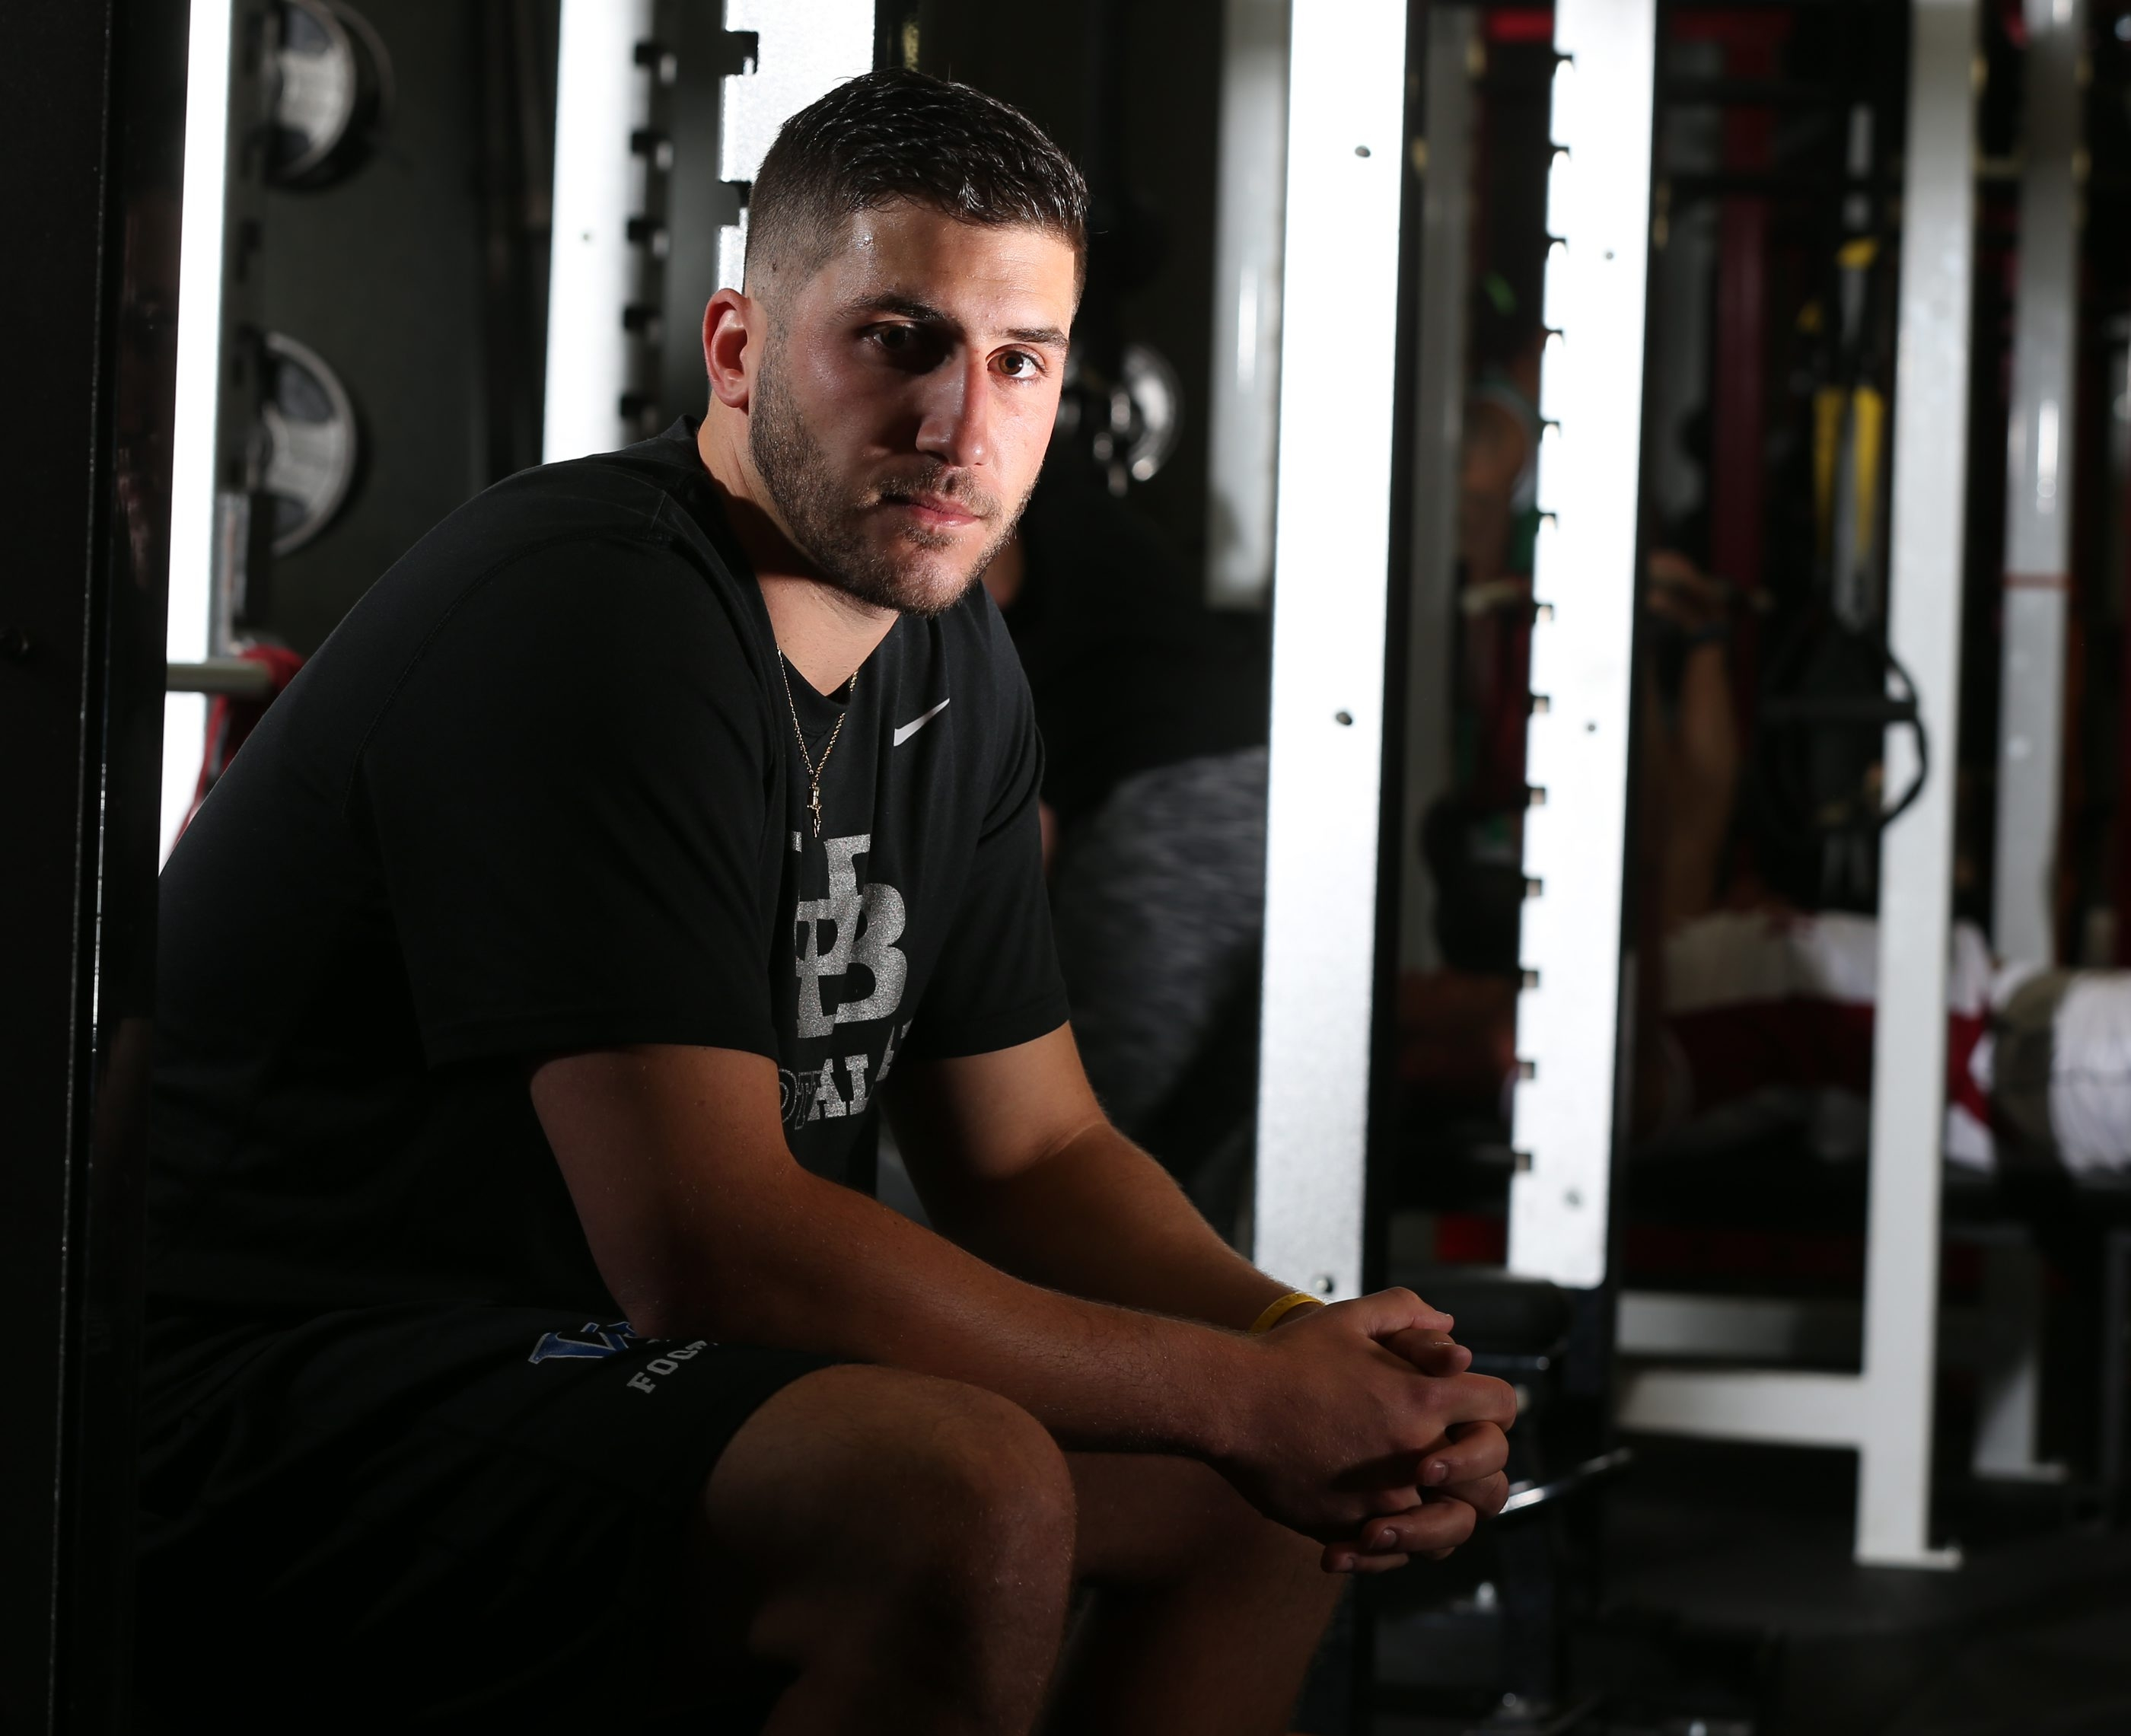 Go ahead. Name any of Joe Licata's perceived shortcomings. He'll respond by ticking off  a list of quarterbacks who overcame similar criticisms to make a name for themselves in the NFL.